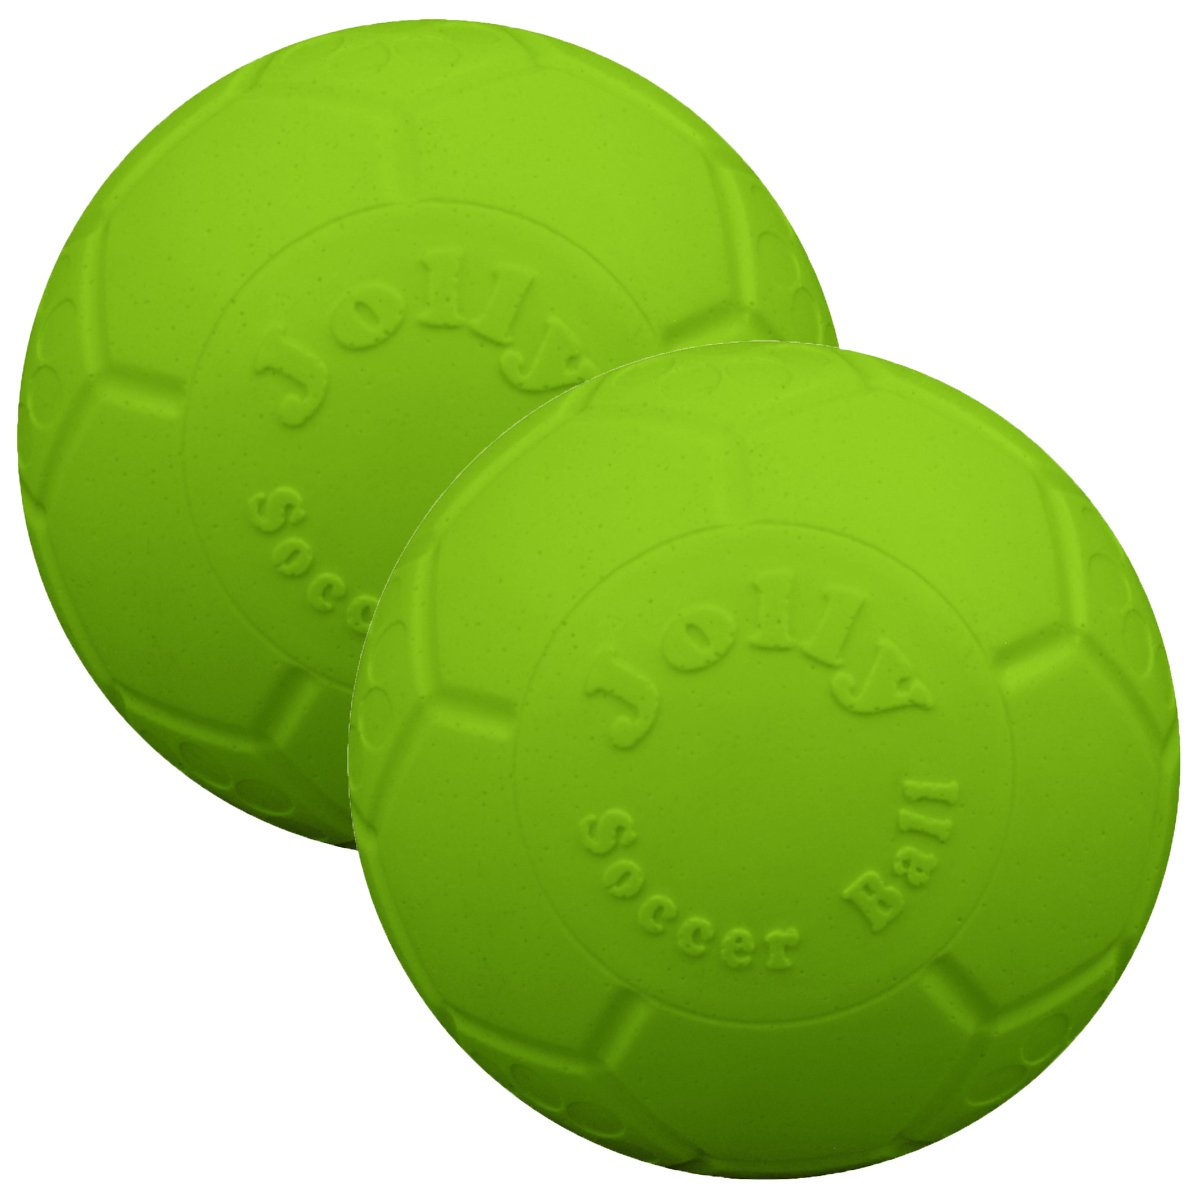 Jolly Pets 6'' Soccer Ball, Green Apple (2 Pack) by Jolly Pets